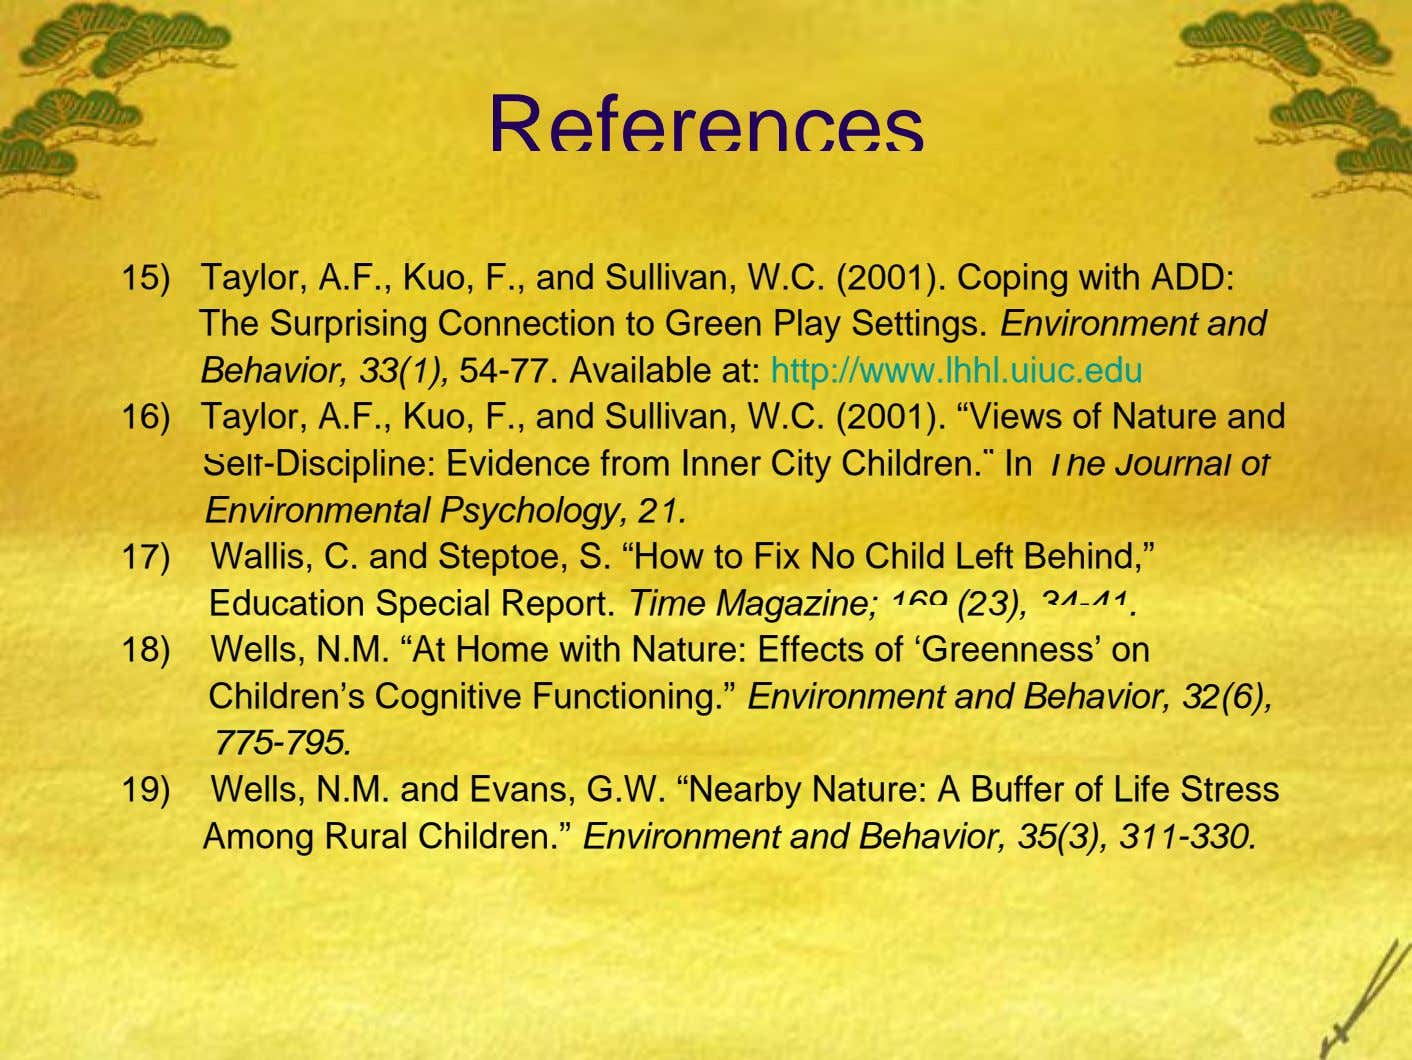 References 15) Taylor, A.F., Kuo, F., and Sullivan, W.C. (2001). Coping with ADD: The Surprising Connection